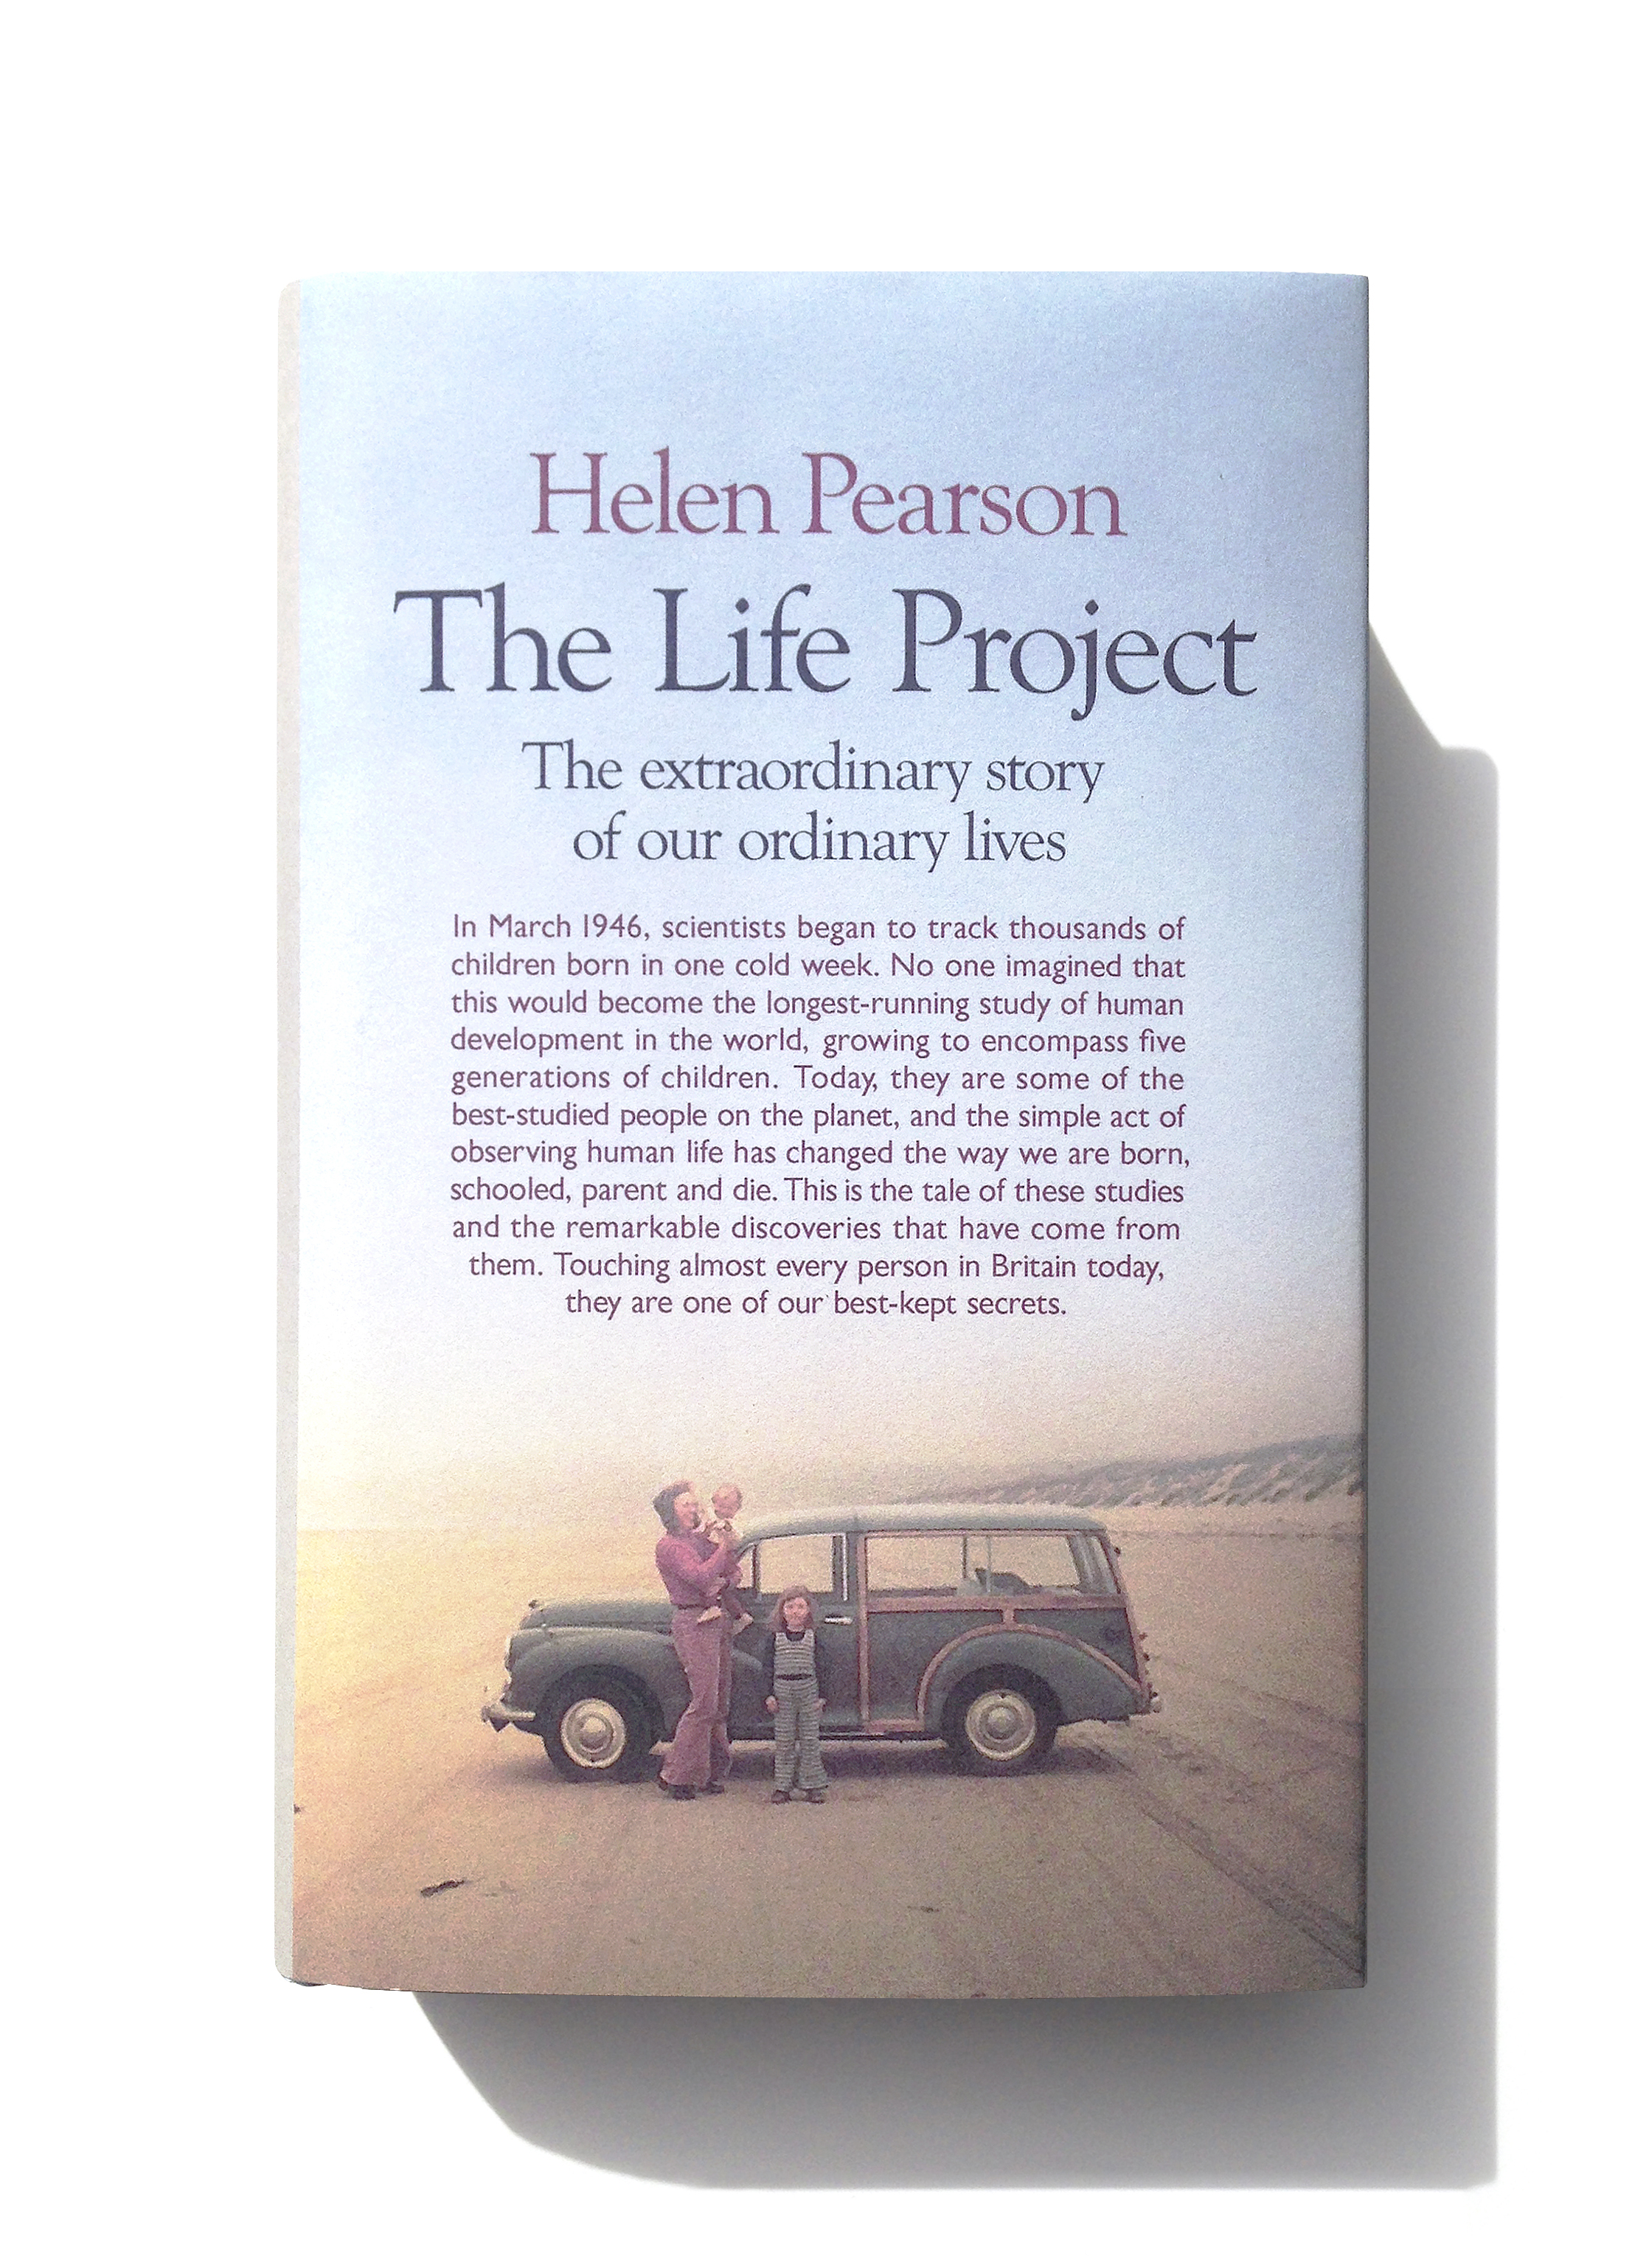 The Life Project by Helen Pearson - Design: Jim Stoddart